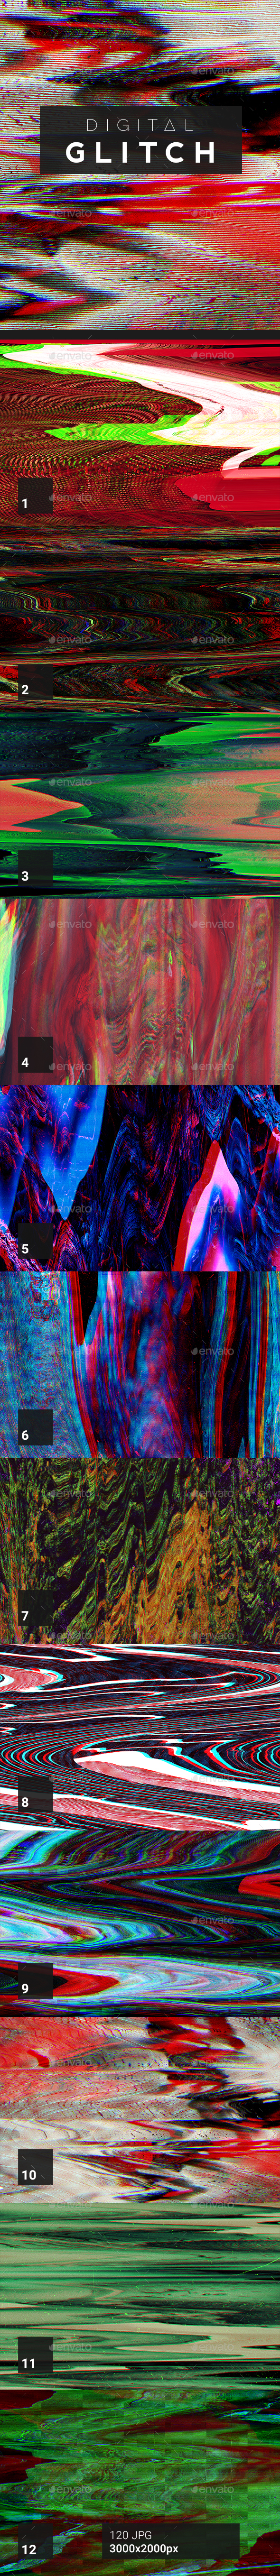 120 Digital Glitch Backgrounds - Abstract Backgrounds